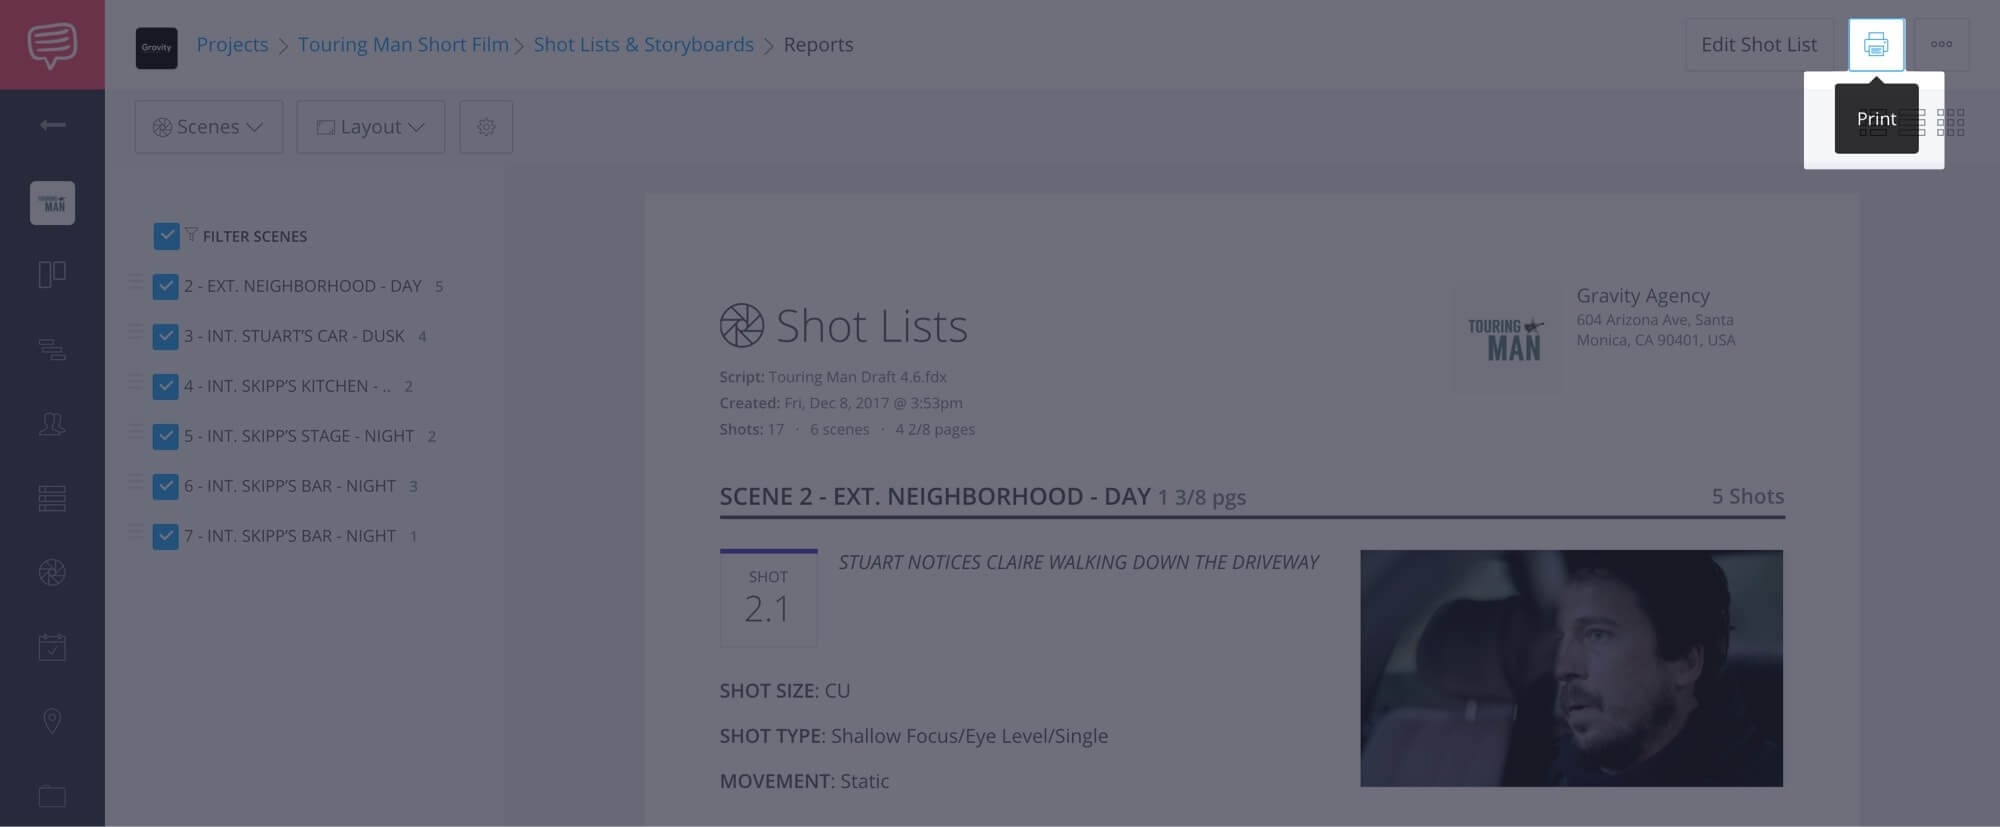 How to Create a Shot List with StudioBinder - Shot List Creator Template - 27